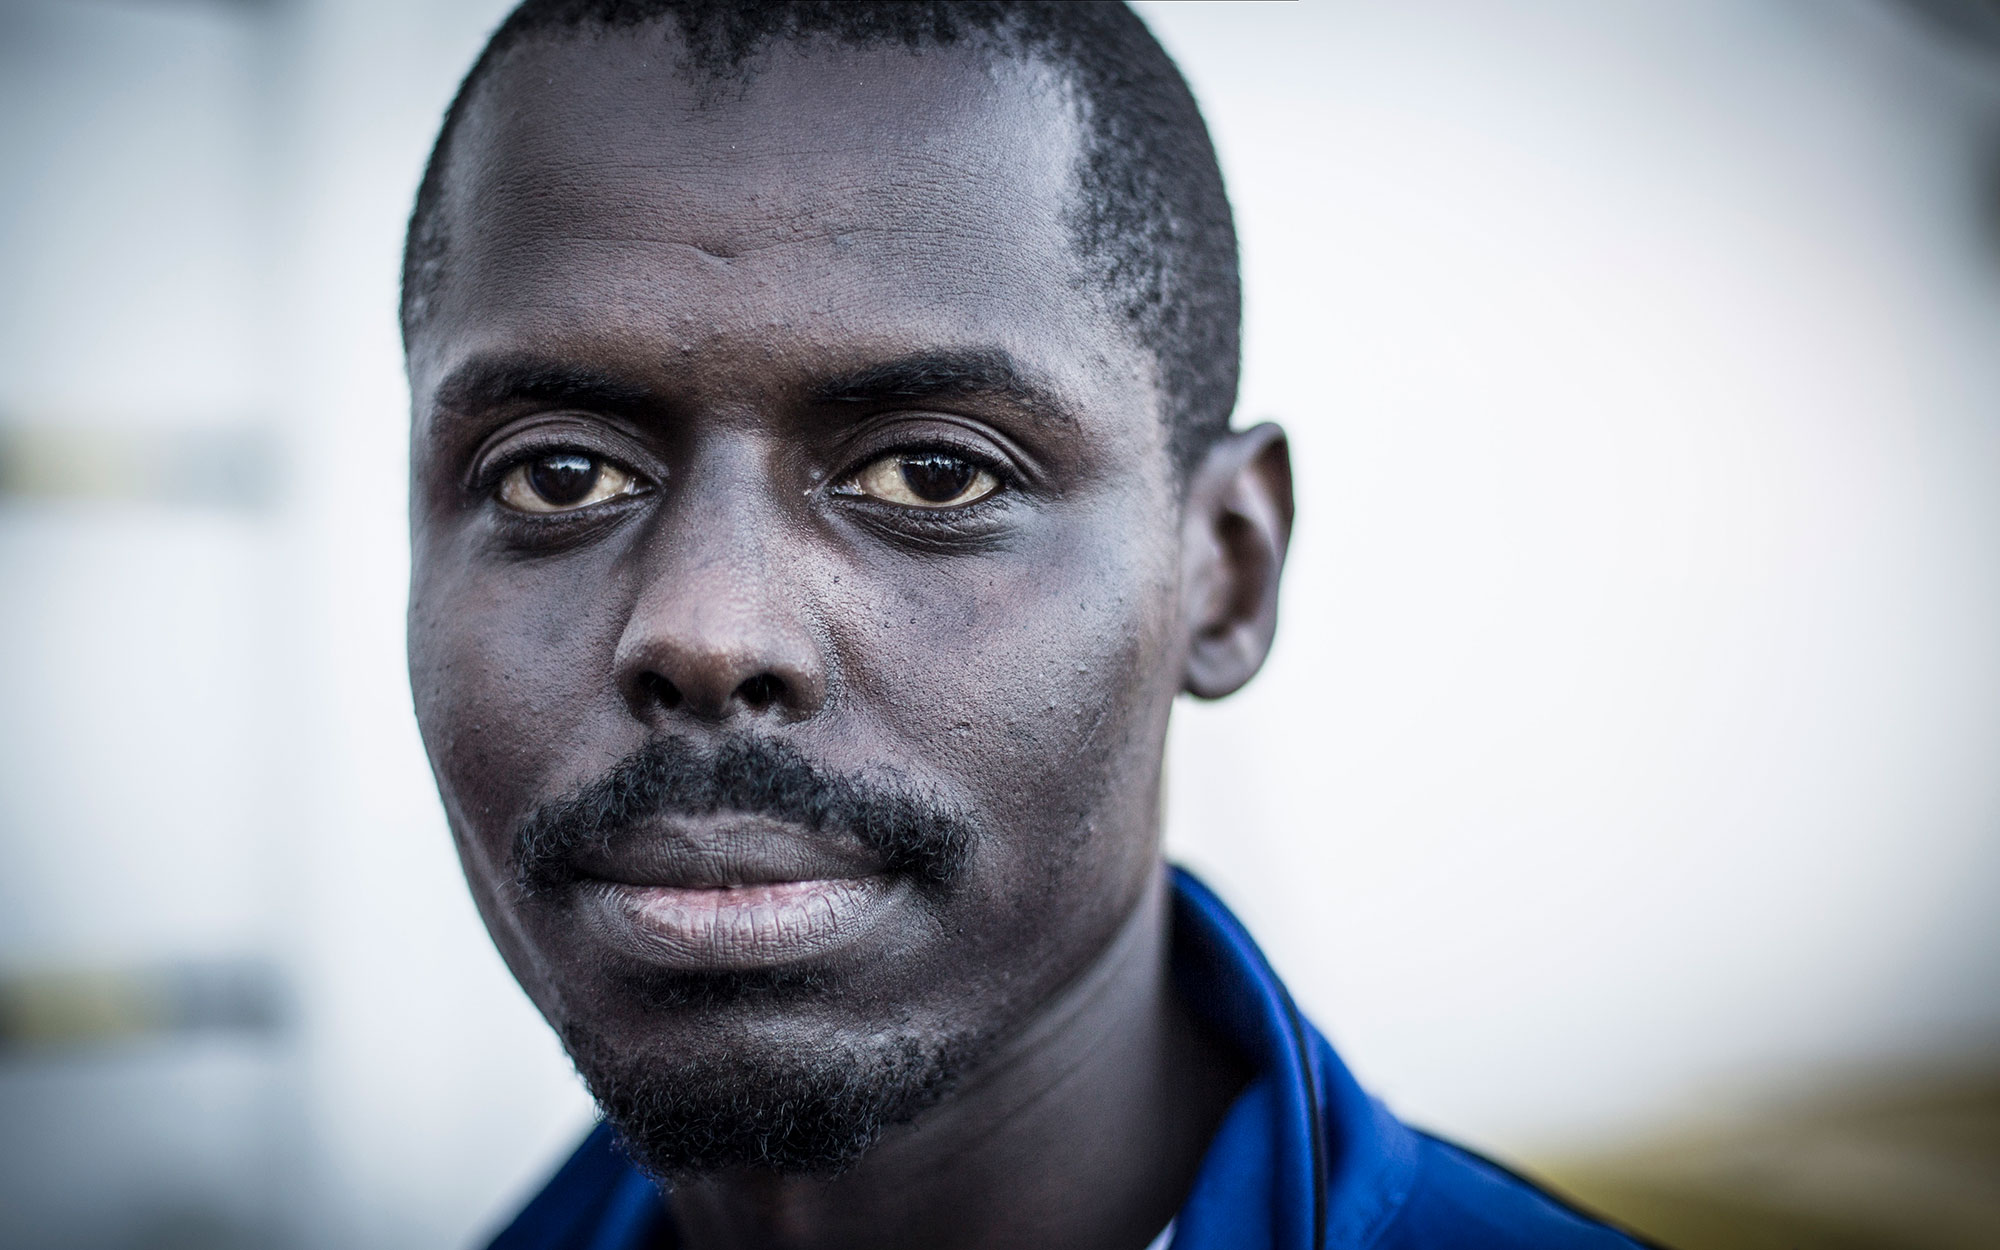 Photograph of Adam, a 24-year-old from Darfur.